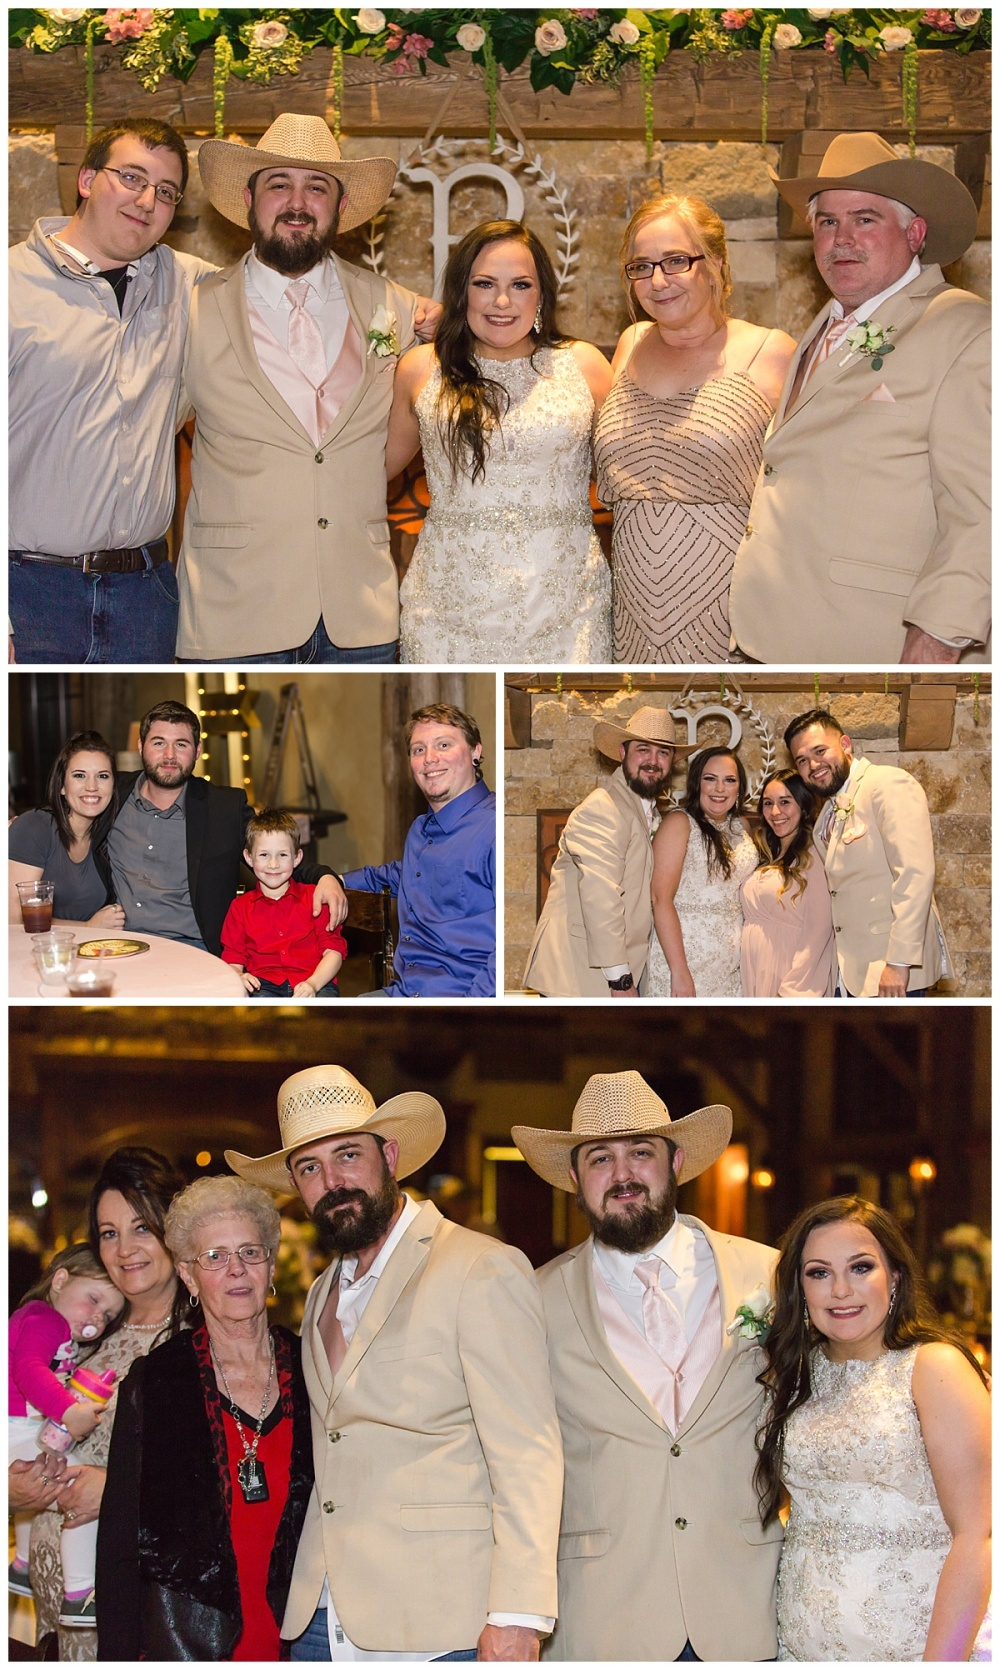 Carly-Barton-Photography-Branded-T-Ranch-Kendalia-Texas-Hill-Country-Wedding_0056.jpg